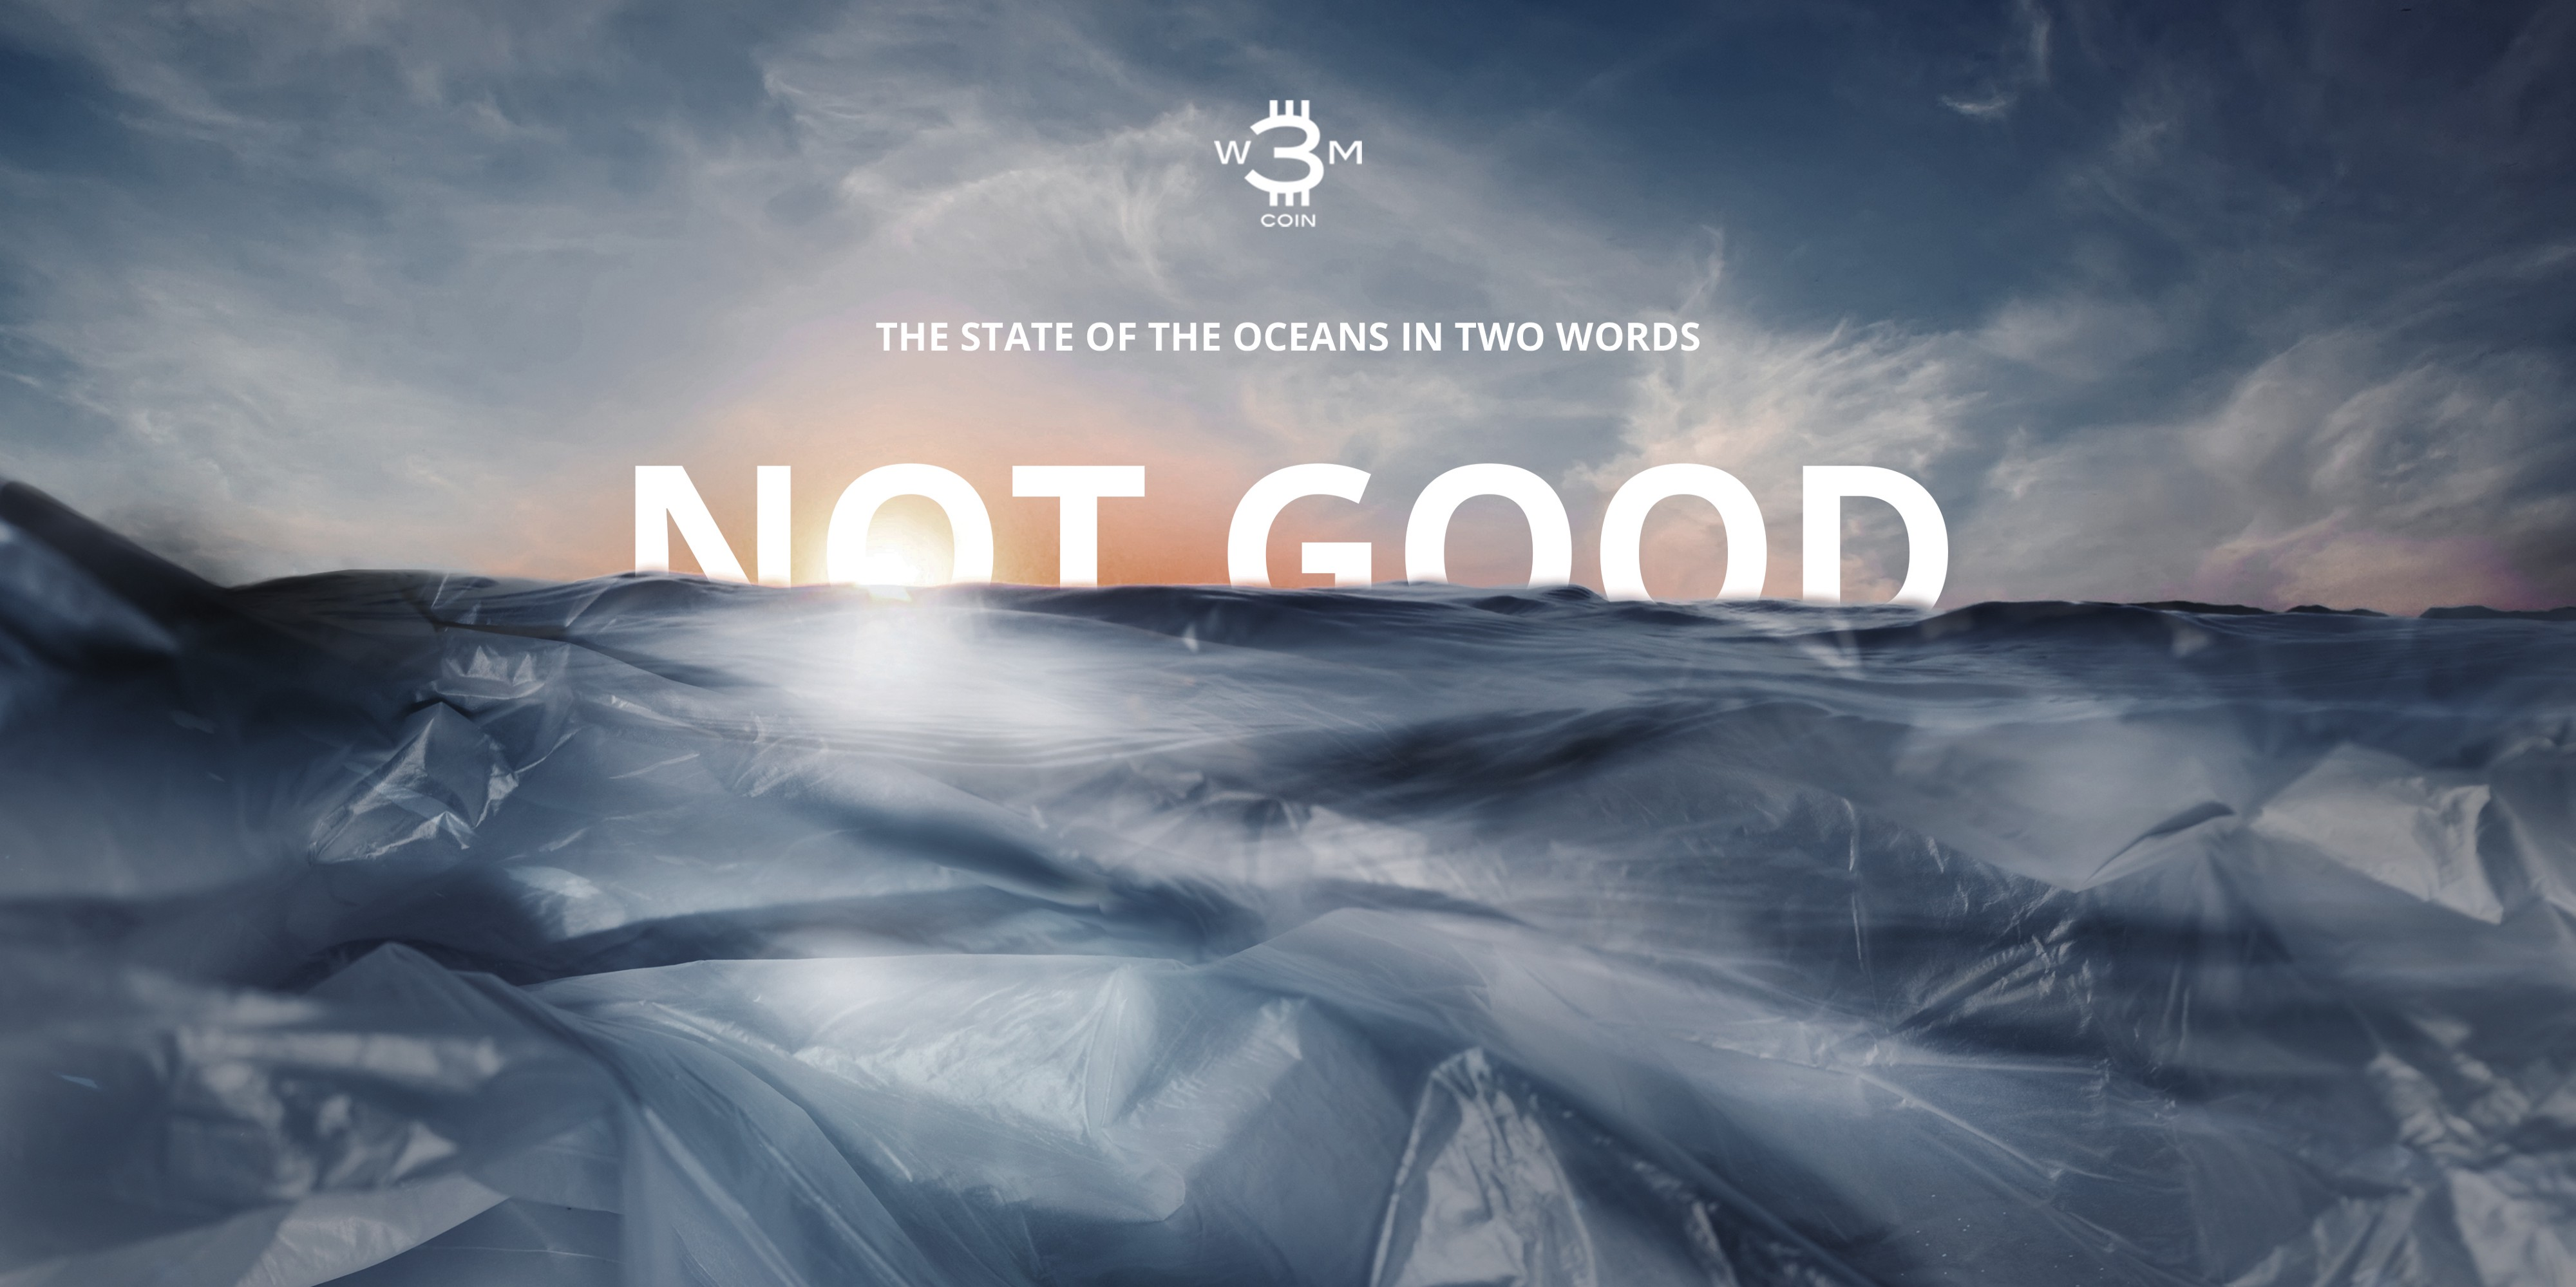 The State of the Oceans in Two Words: Not Good